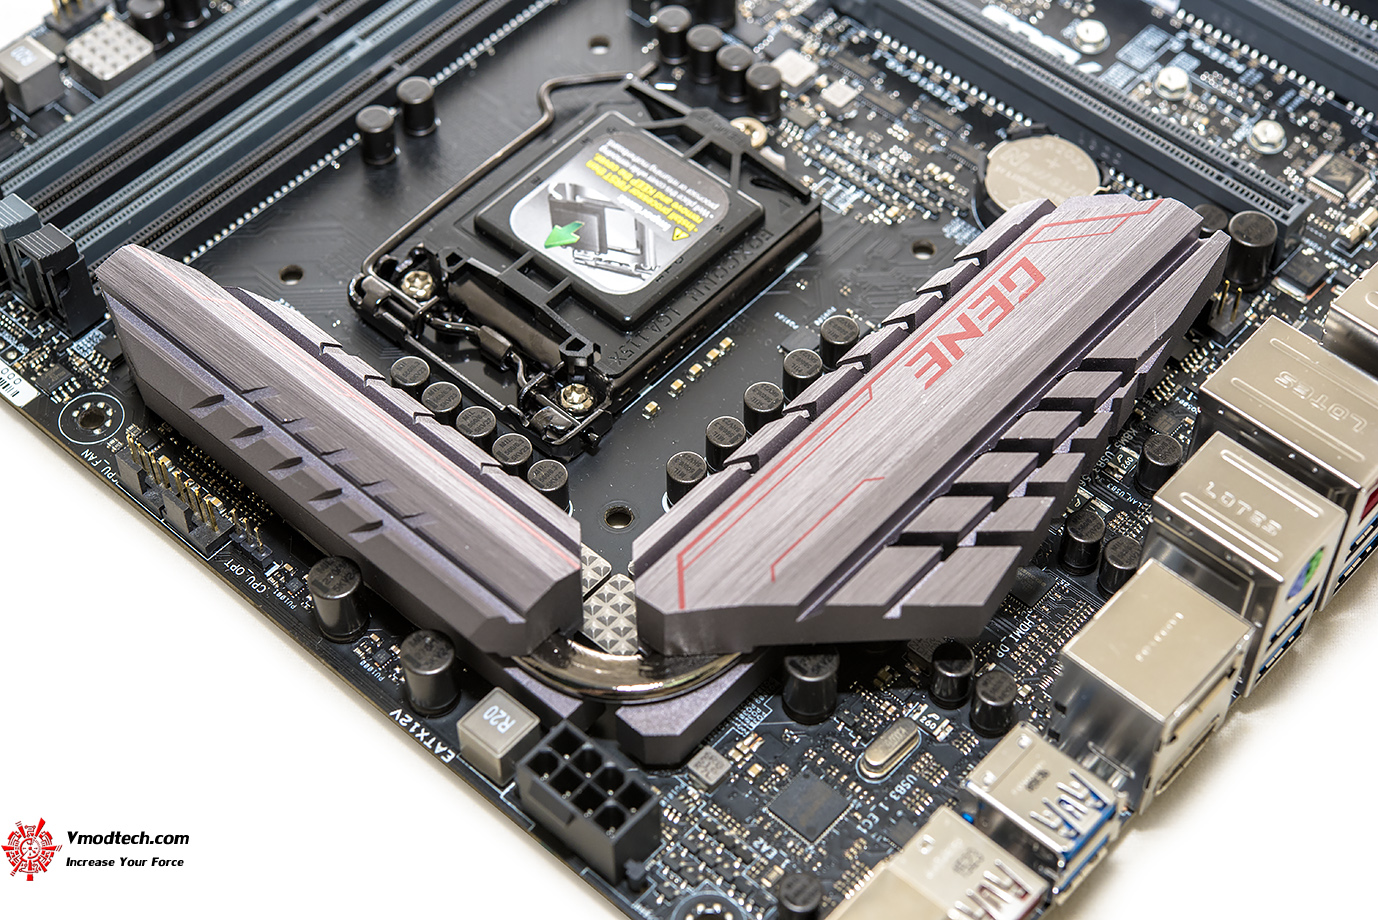 dsc 9115 ASUS ROG MAXIMUS VIII GENE Motherboard Review